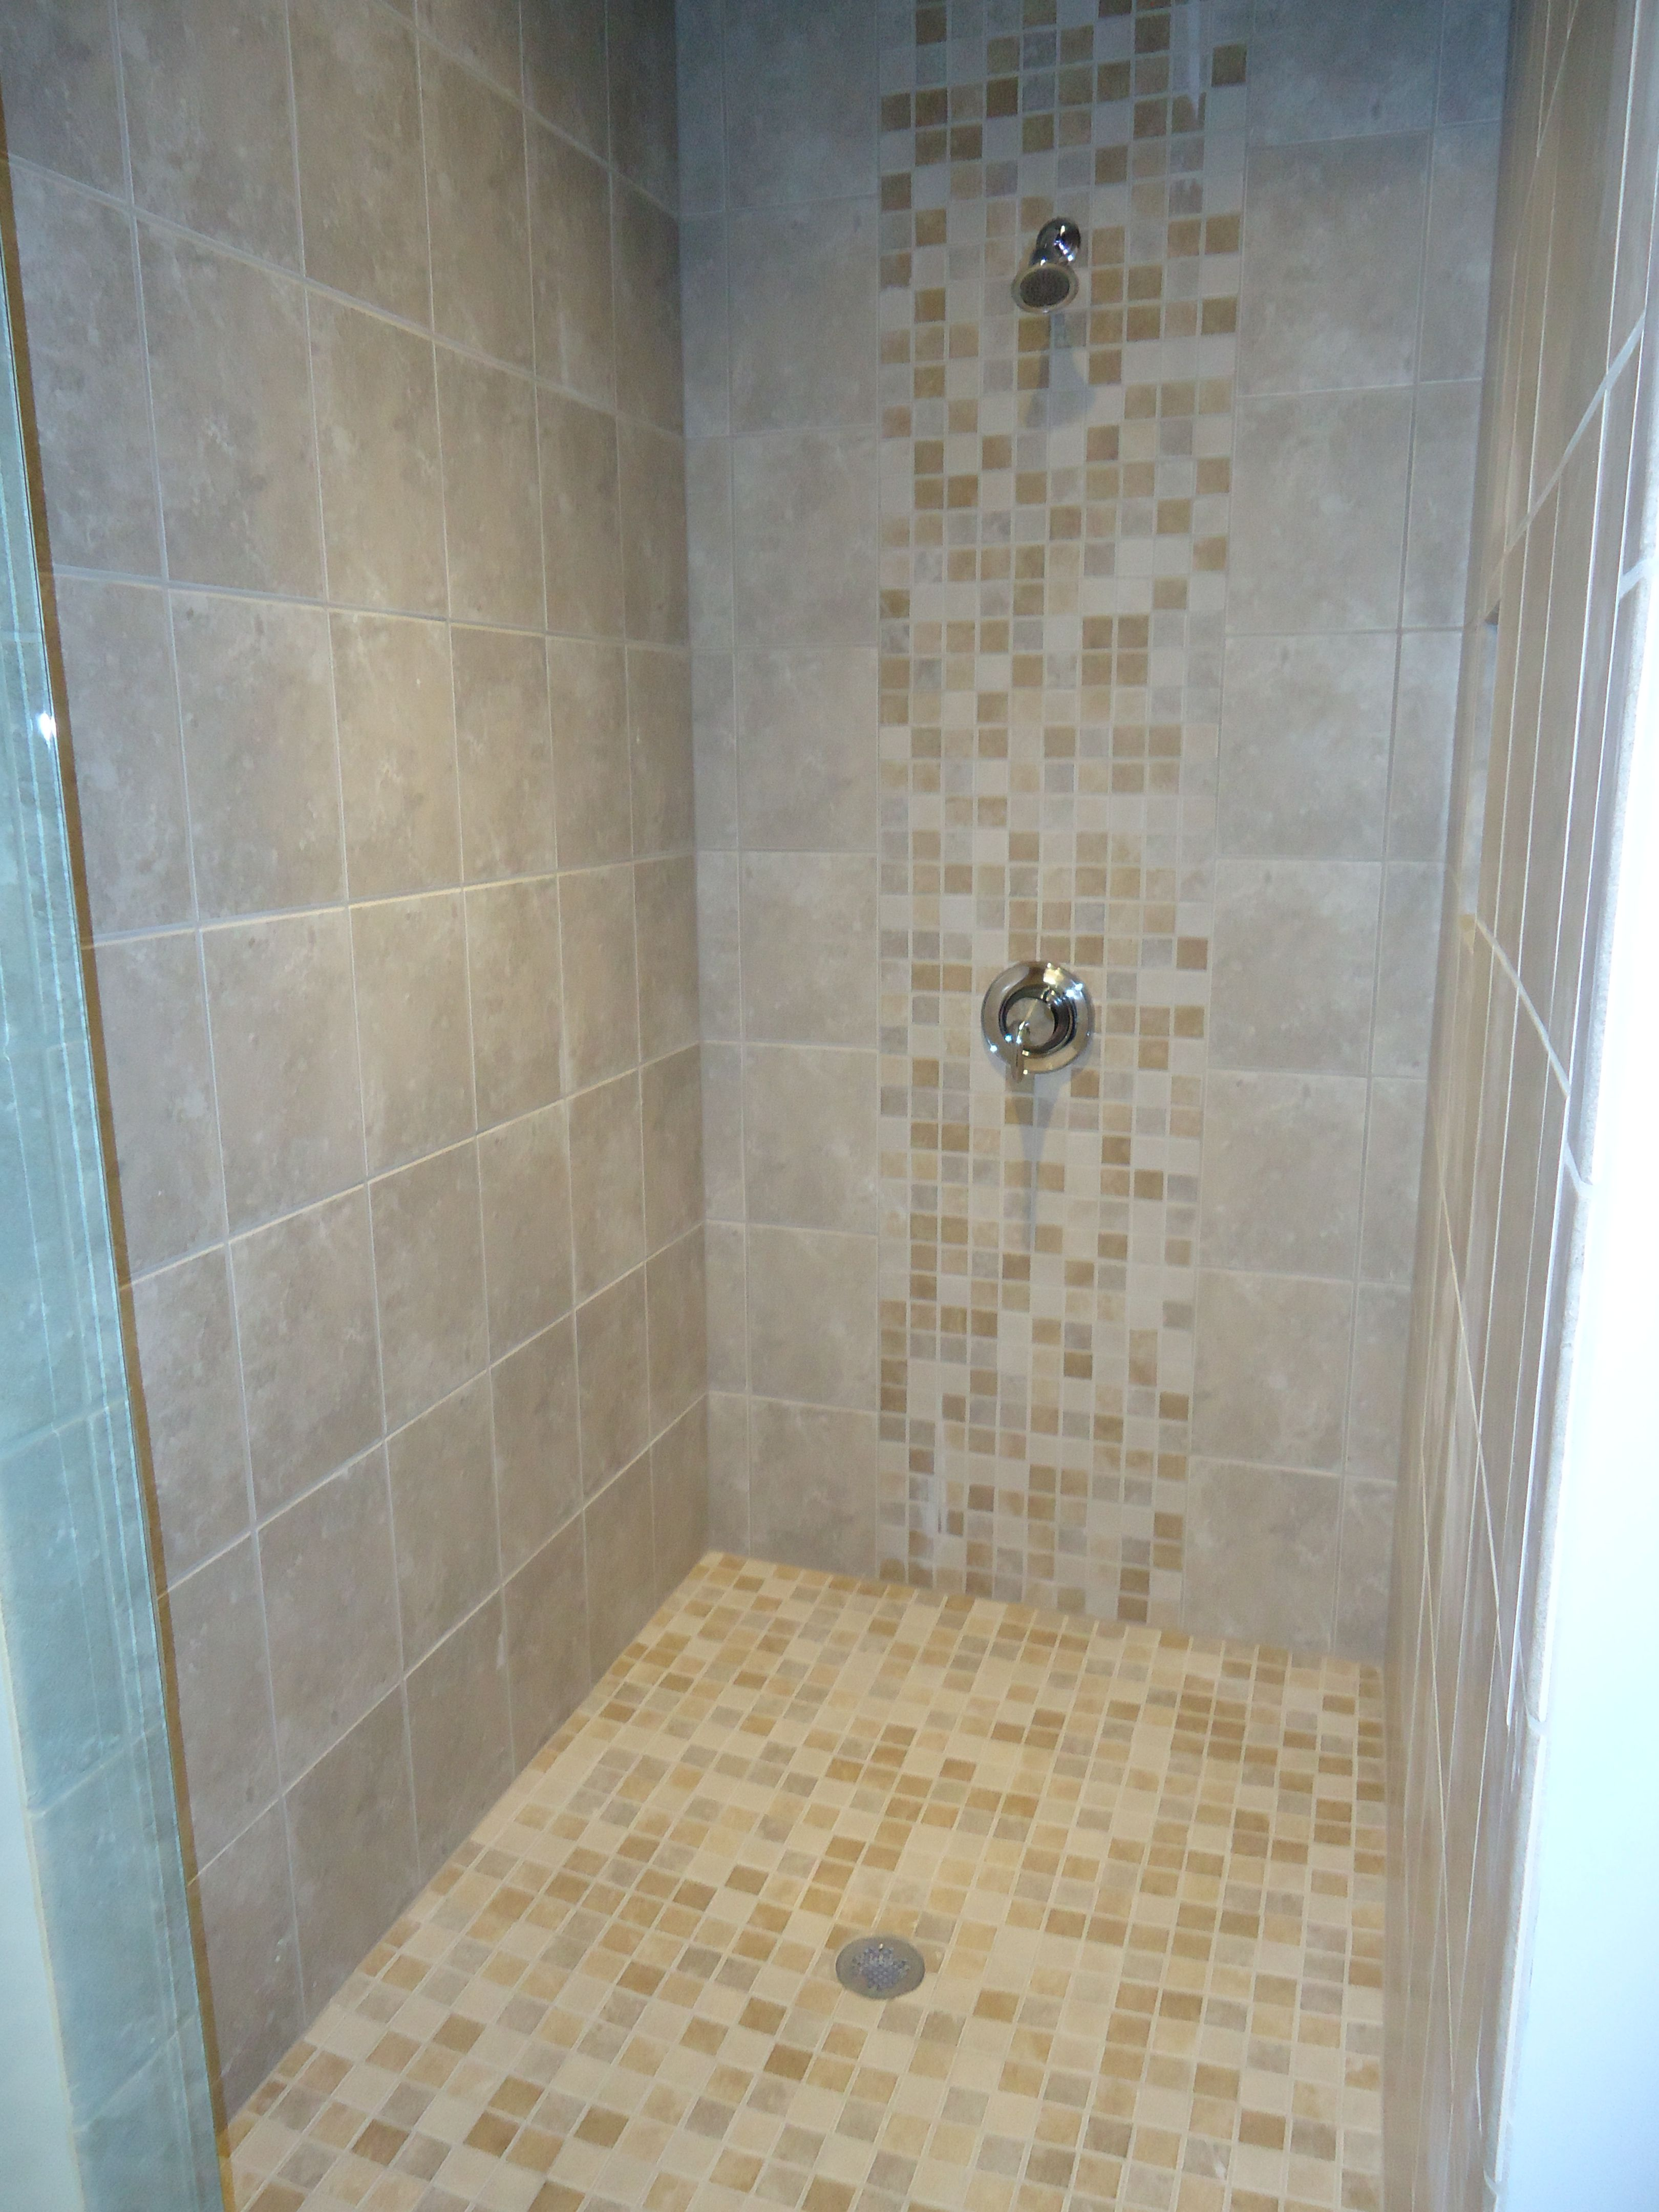 Secondary bath 2 we utilized daltile sandalo castillian gray secondary bath 2 we utilized daltile sandalo castillian gray with mosaic to achieve this modern and clean shower design dailygadgetfo Images